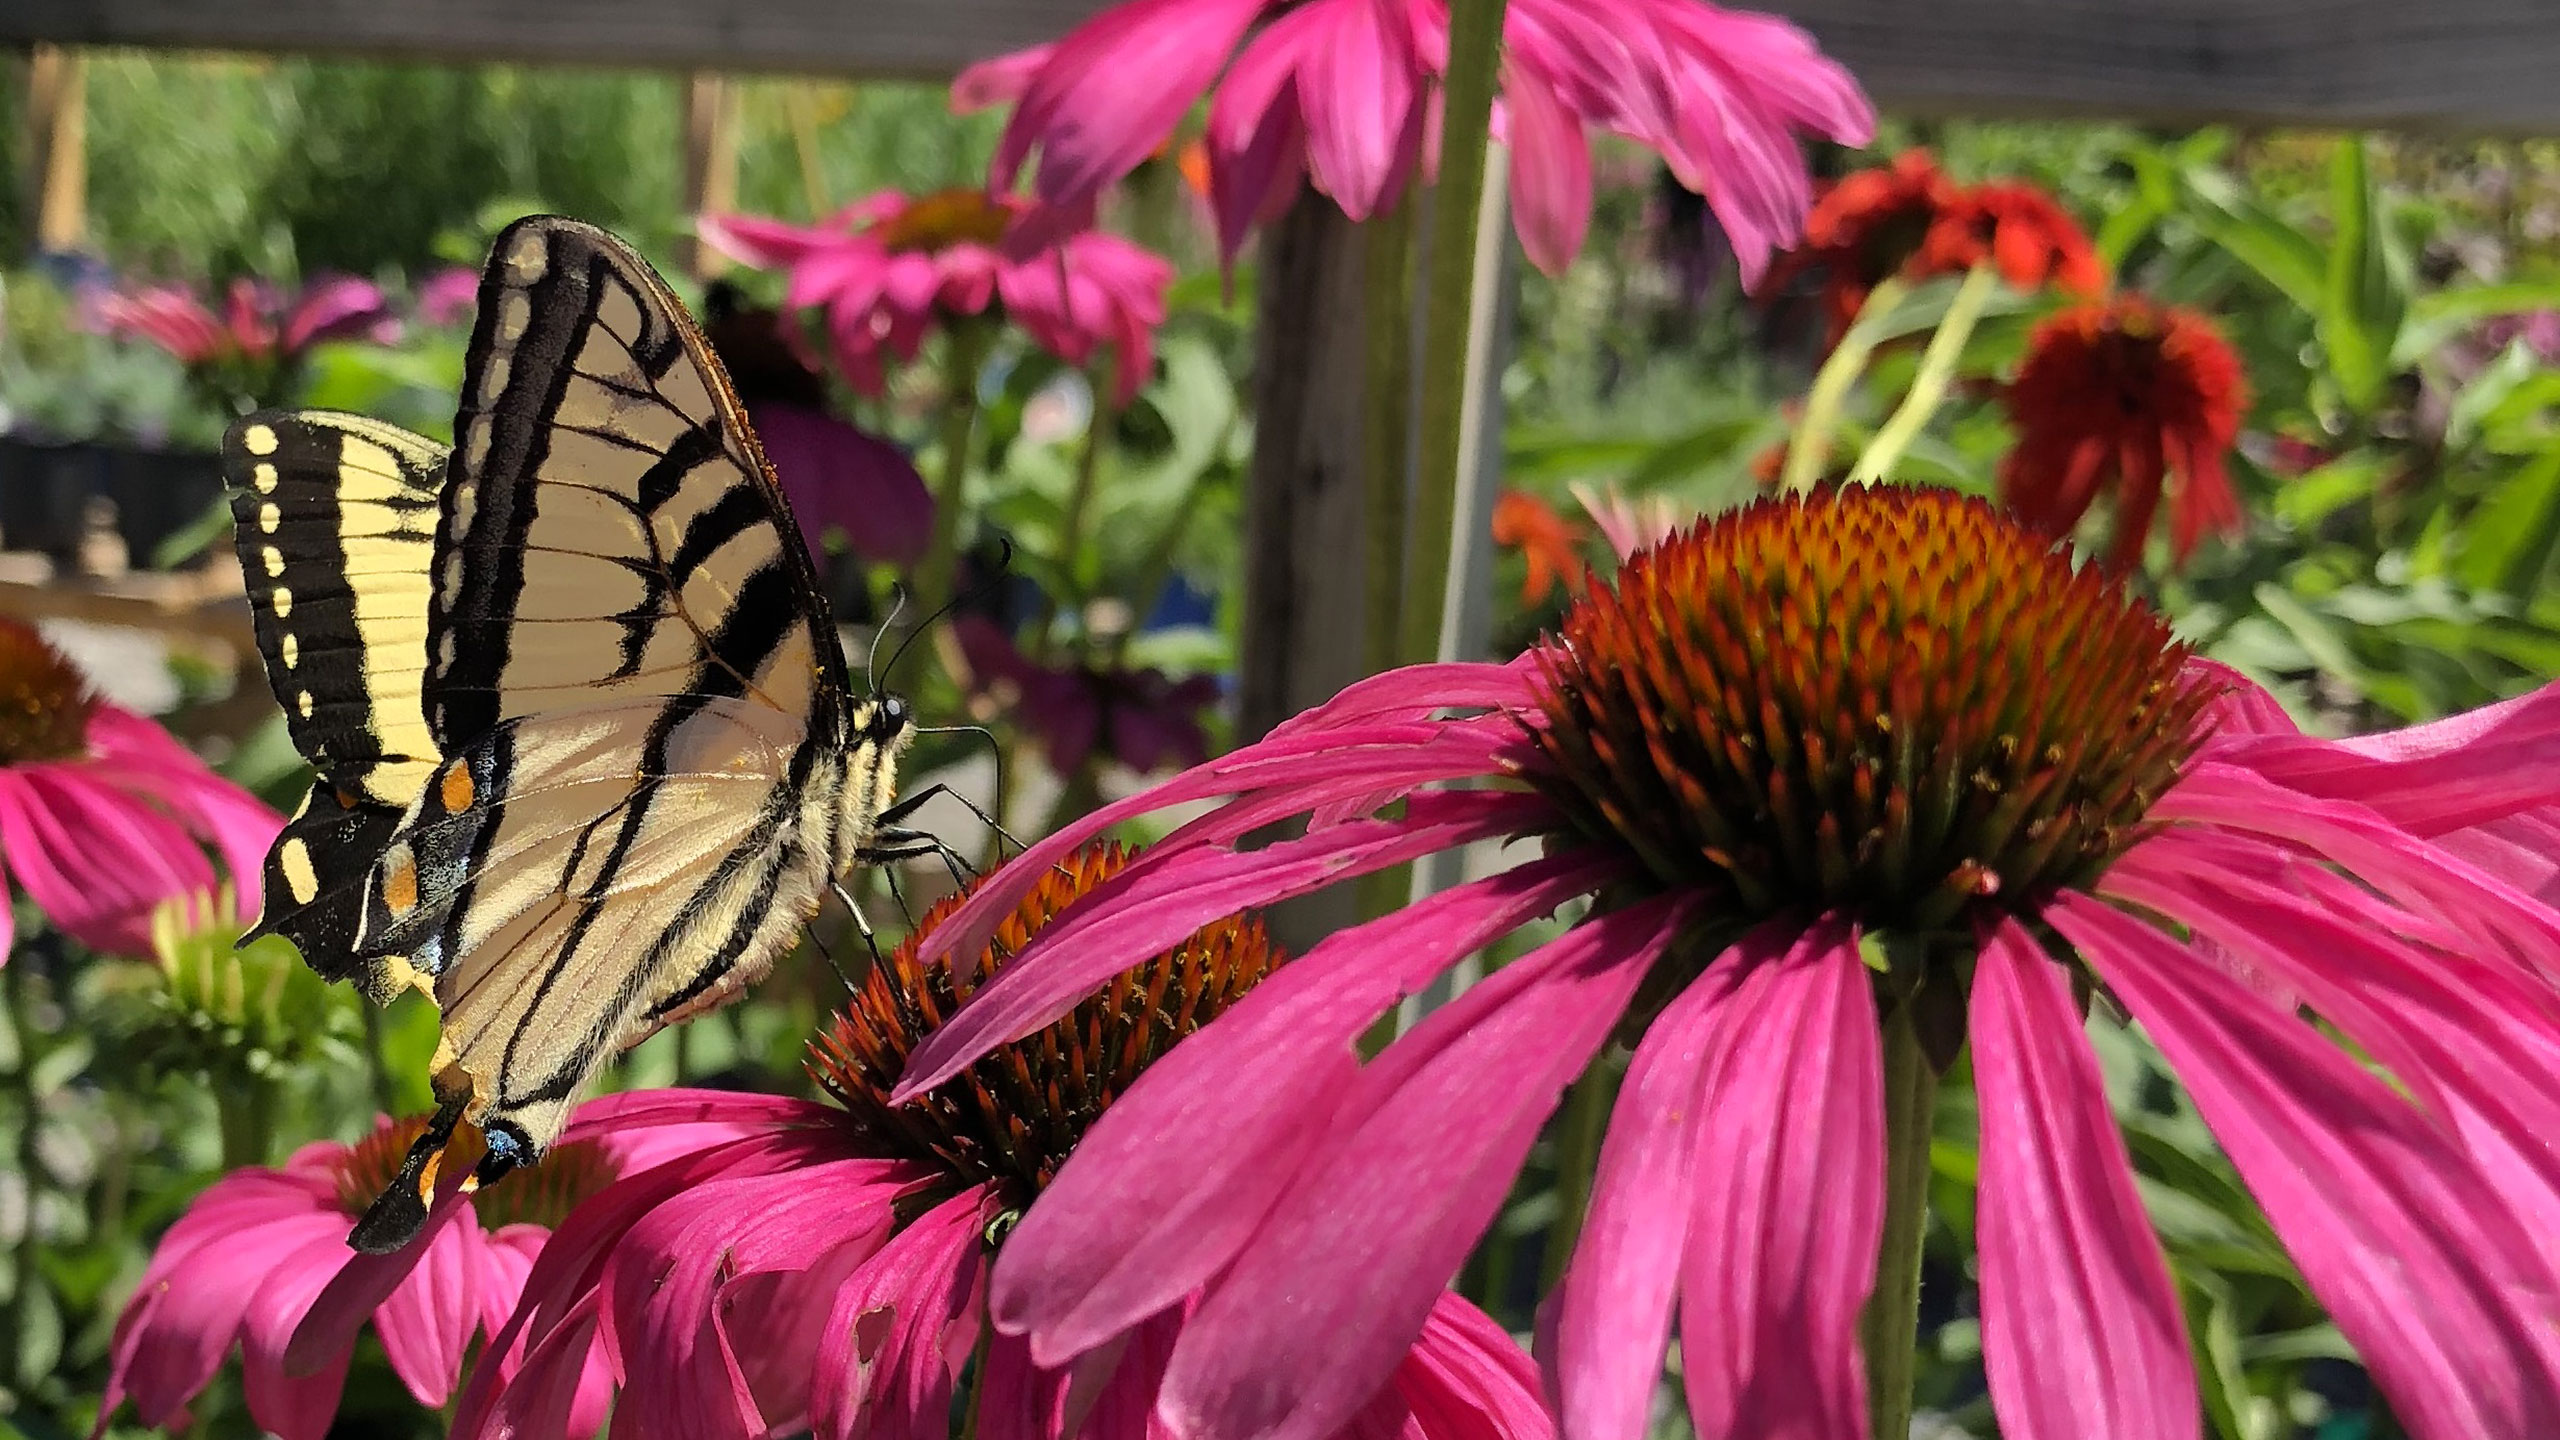 A Swallowtail Butterfly feeding on coneflower